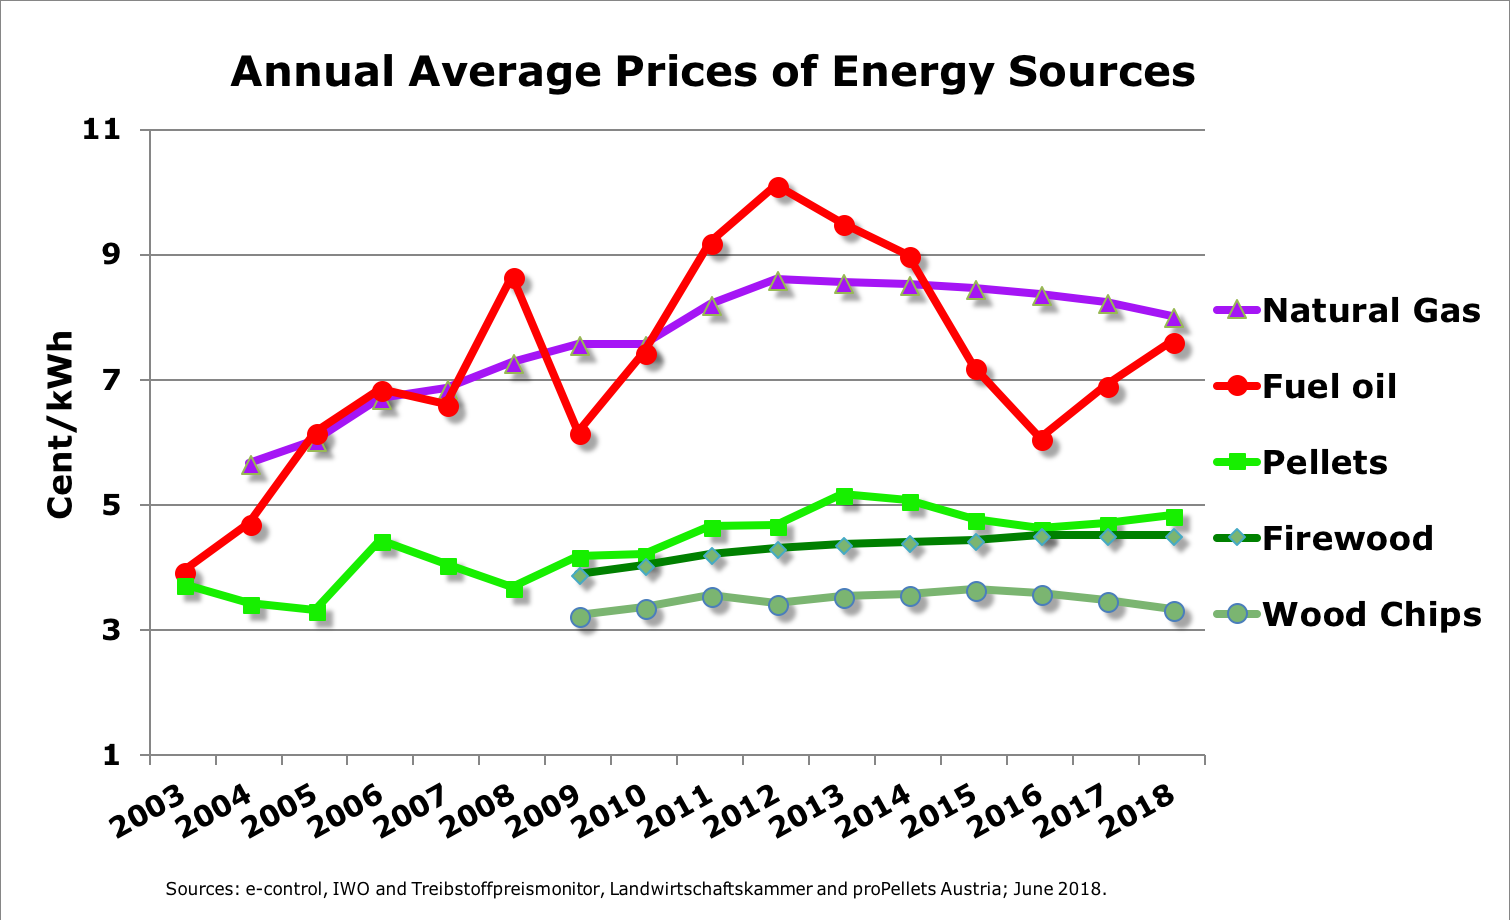 Annual Average Prices of Energy Sources